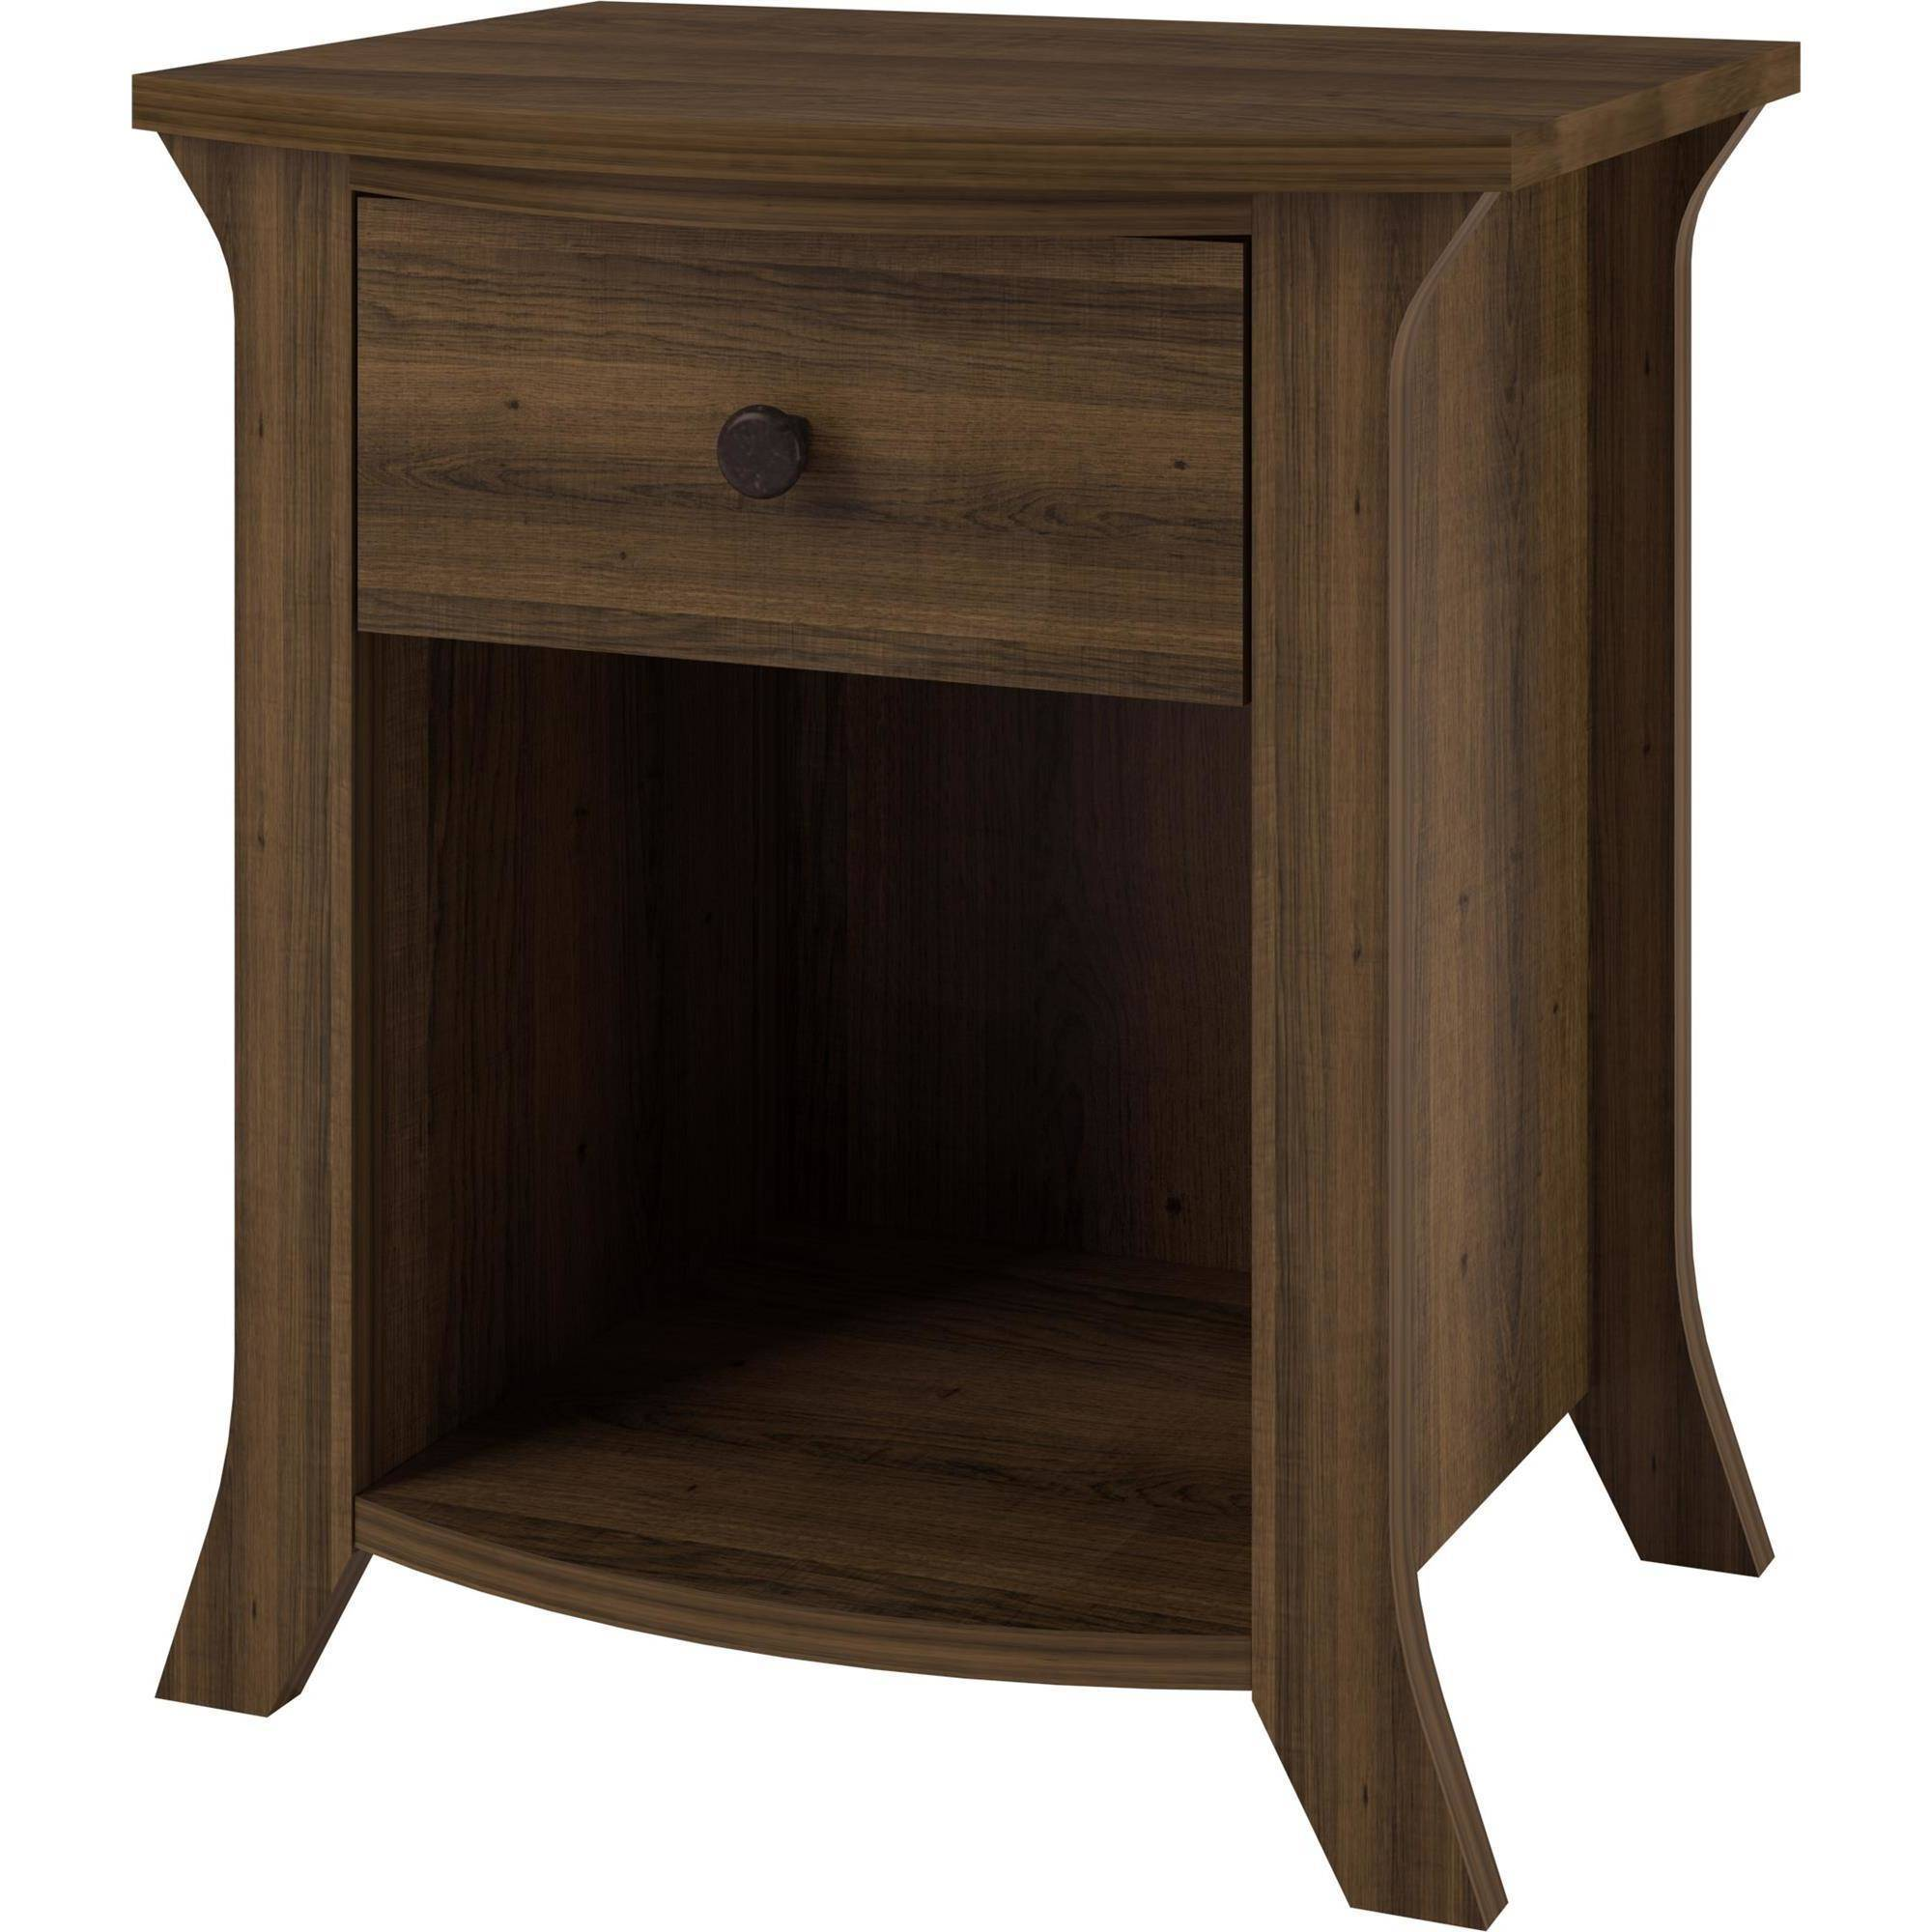 teak outdoor furniture the terrific awesome mainstays nightstand collection curved end table home decorating incredible charming interior design ideas with oakridge nightstandend